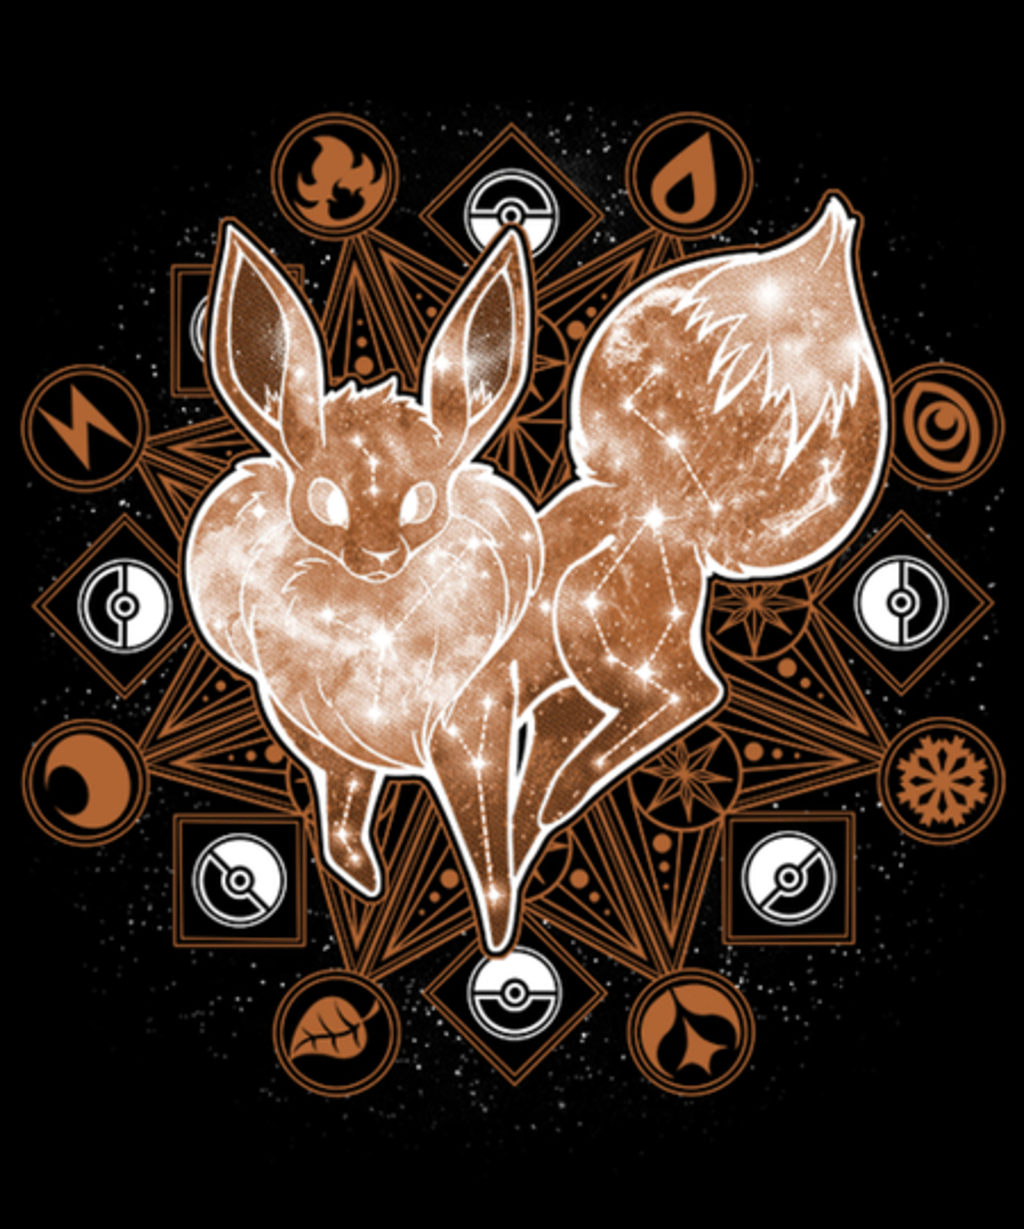 Qwertee: Starry Sky of Evolution